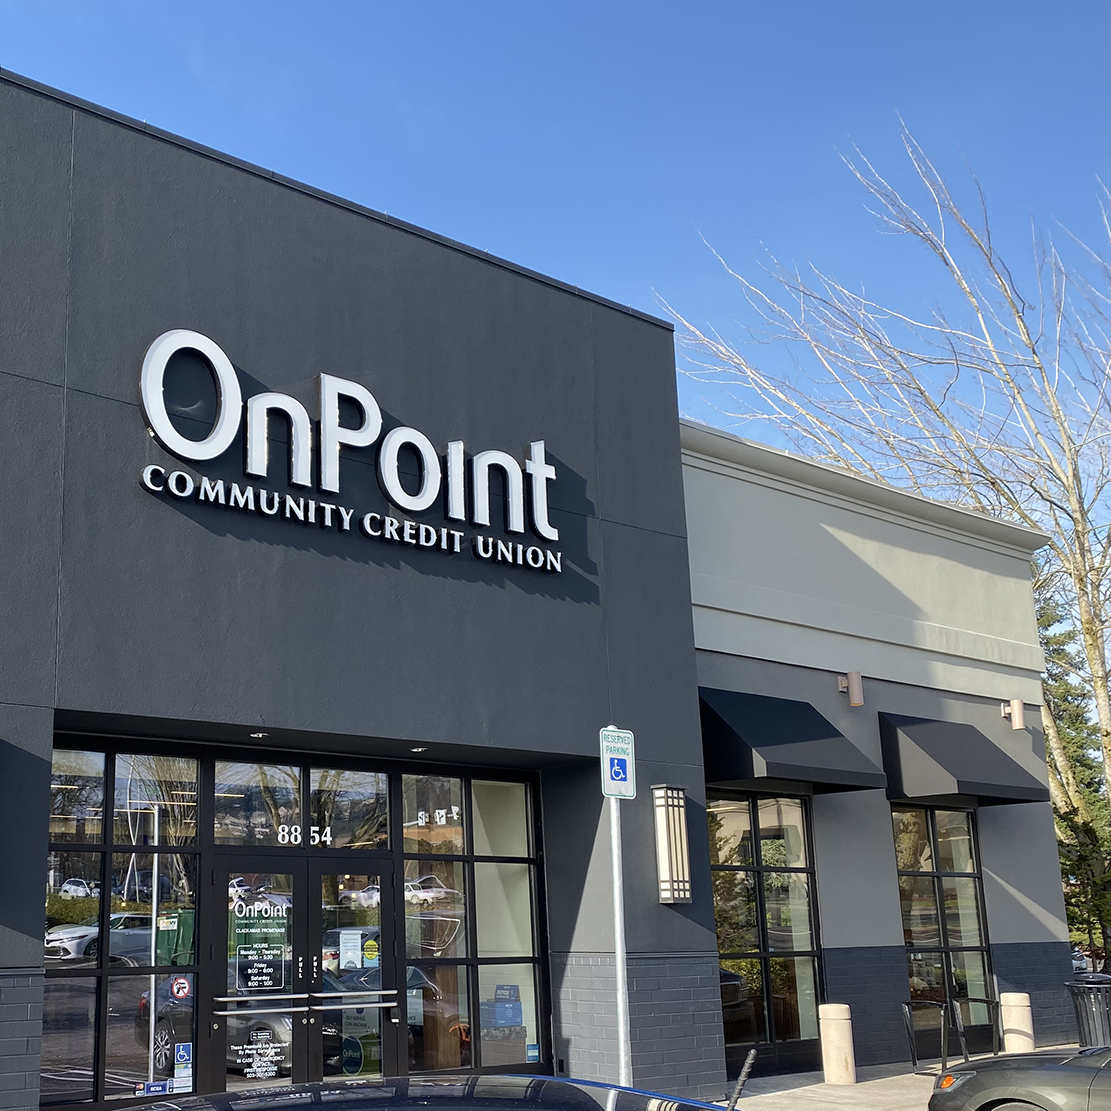 Join Us in Celebrating Our Move to a New Branch Location in Clackamas Promenade